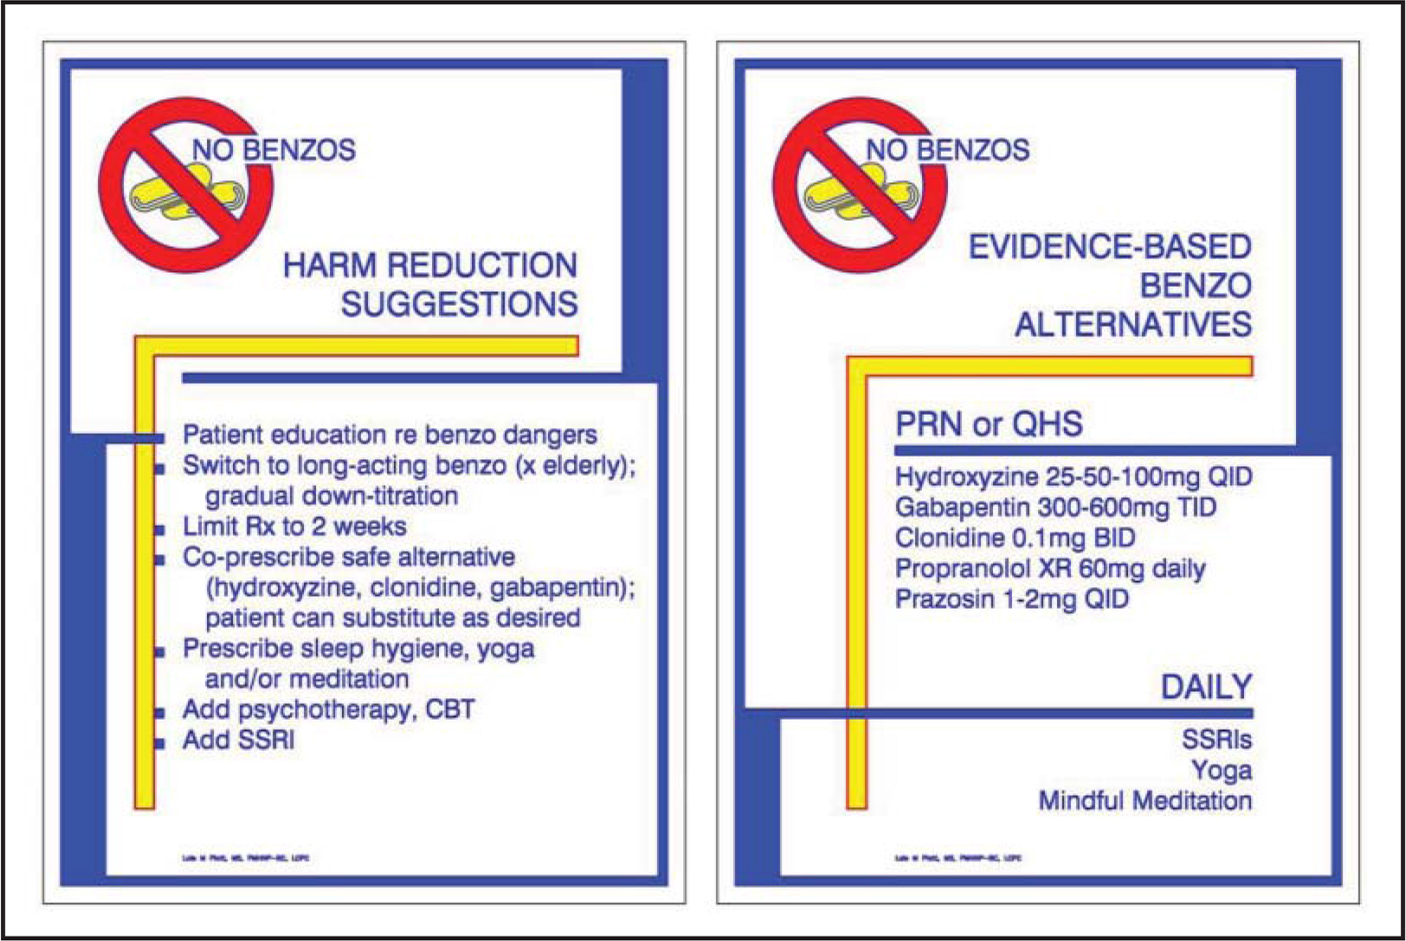 """No Benzo"" posters used in the clinic for the intervention.Note. CBT = cognitive-behavioral therapy; SSRI = selective serotonin reuptake inhibitor; PRN = pro re nata (as needed); QHS = daily at bedtime; QID = four times daily; TID = three times daily; BID = twice daily. Alpha-2 agonists, beta-blockers, and some anticonvulsants are used off-label for anxiety and insomnia."